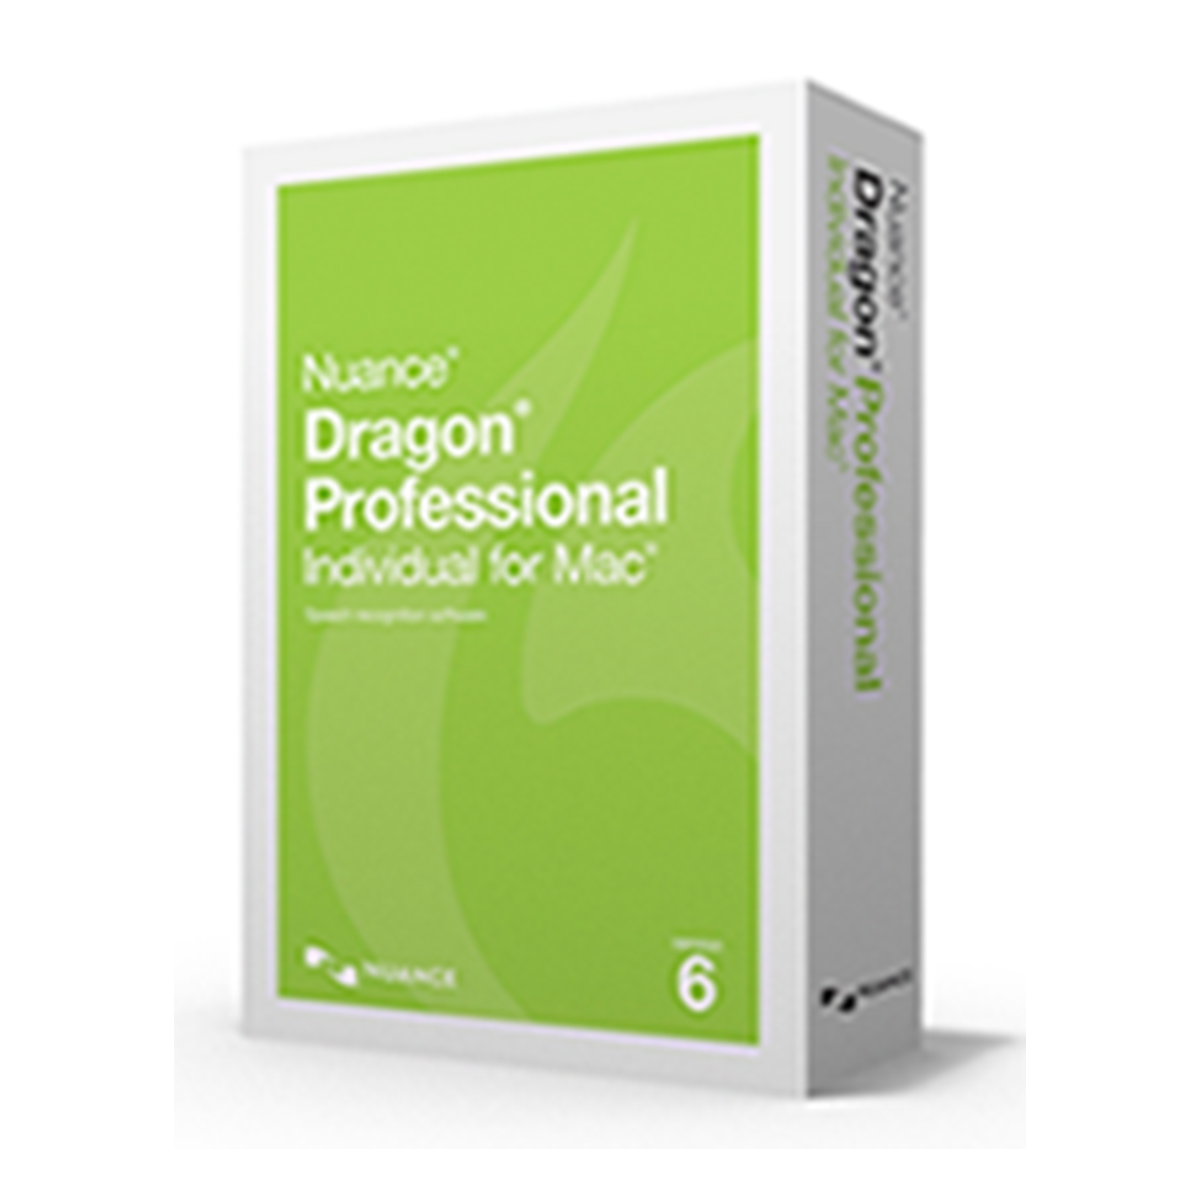 Nuance Dragon Professional Individual 6.0 for Mac English - Box Copy